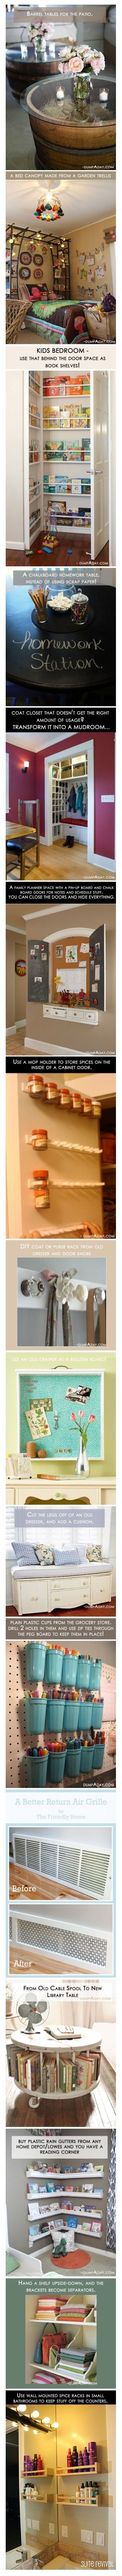 16 Amazing Do It Yourself Home Ideas by laynee